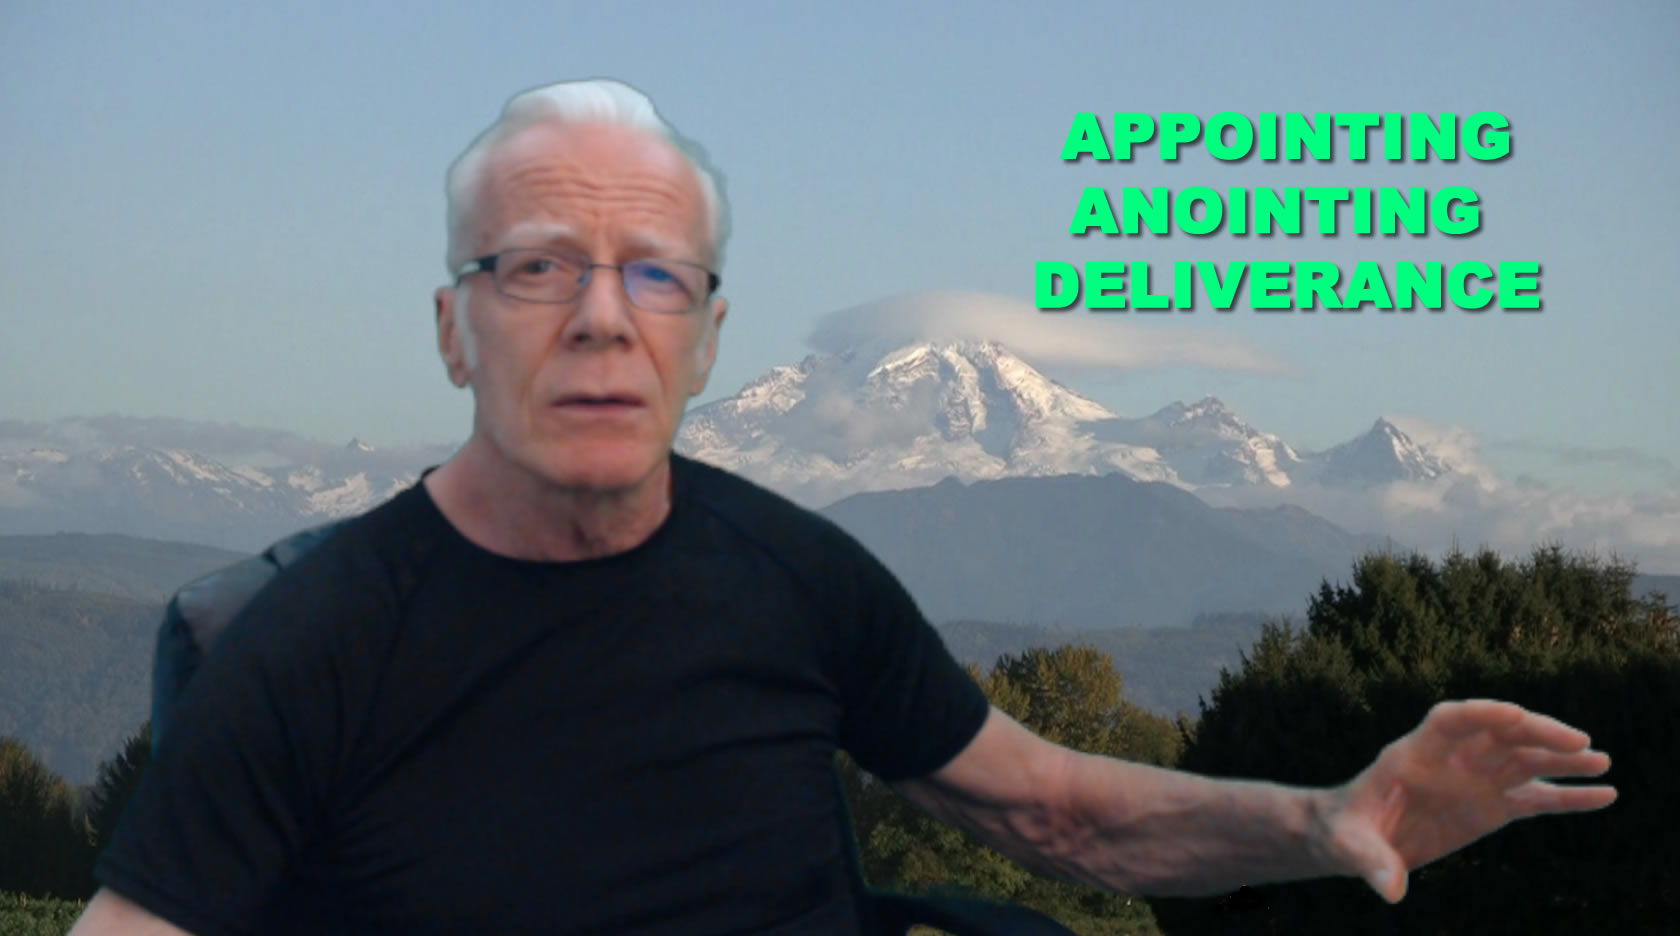 Appointing Anointing Deliverance